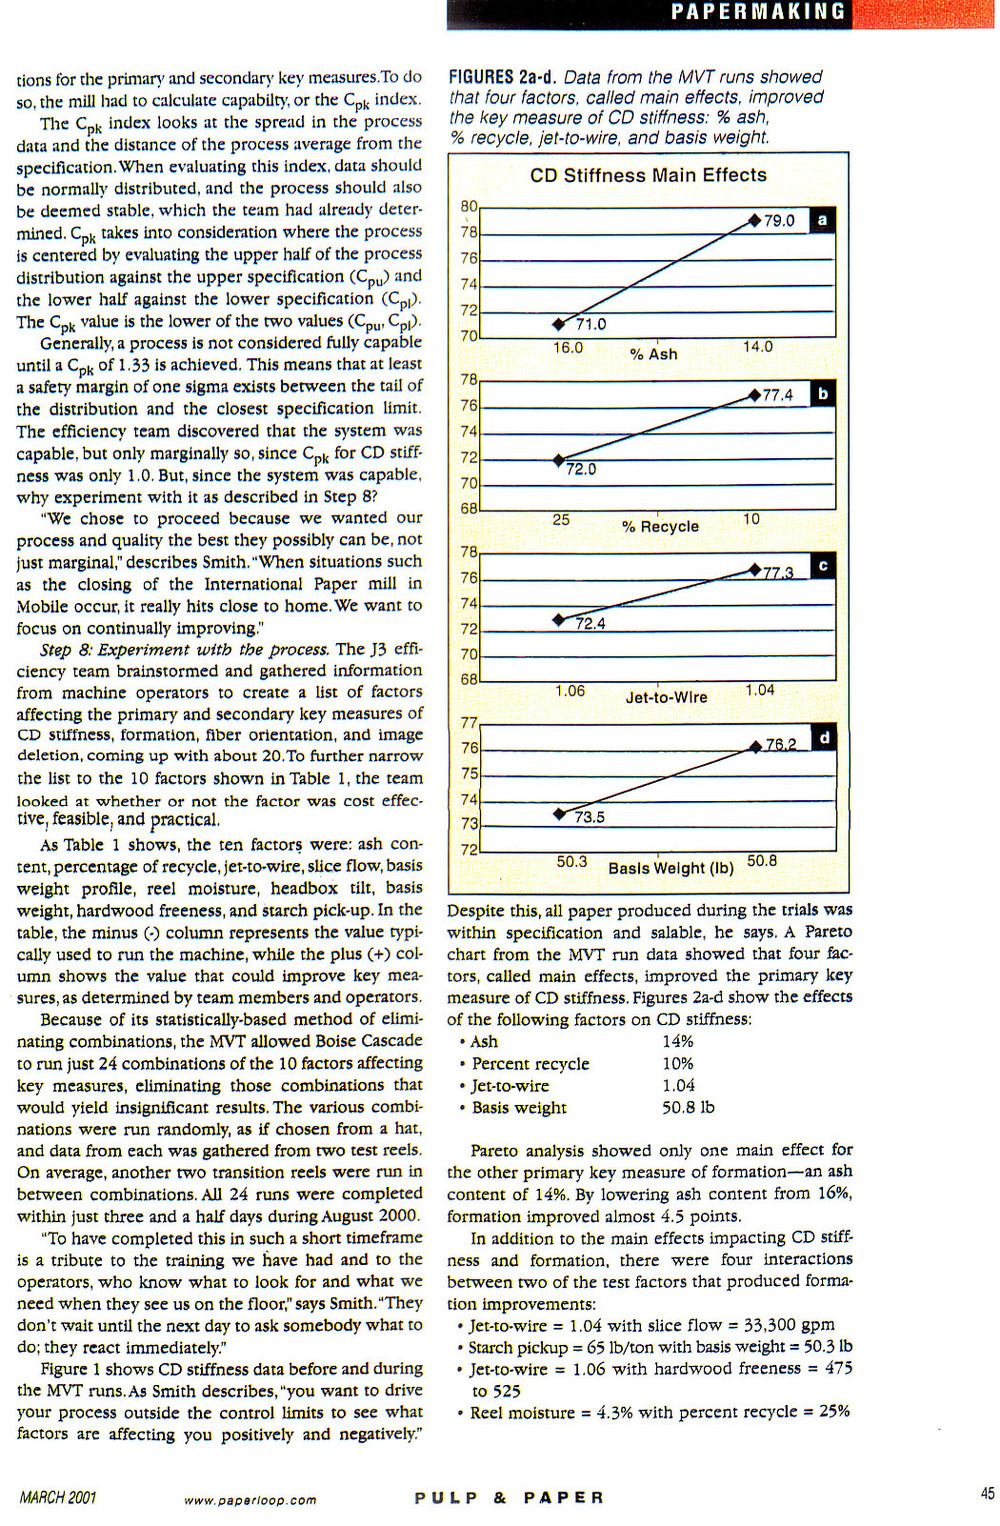 pulp & paper-march 2001-optimization method improves paper, pulp processes at boise cascade  page 3.jpg